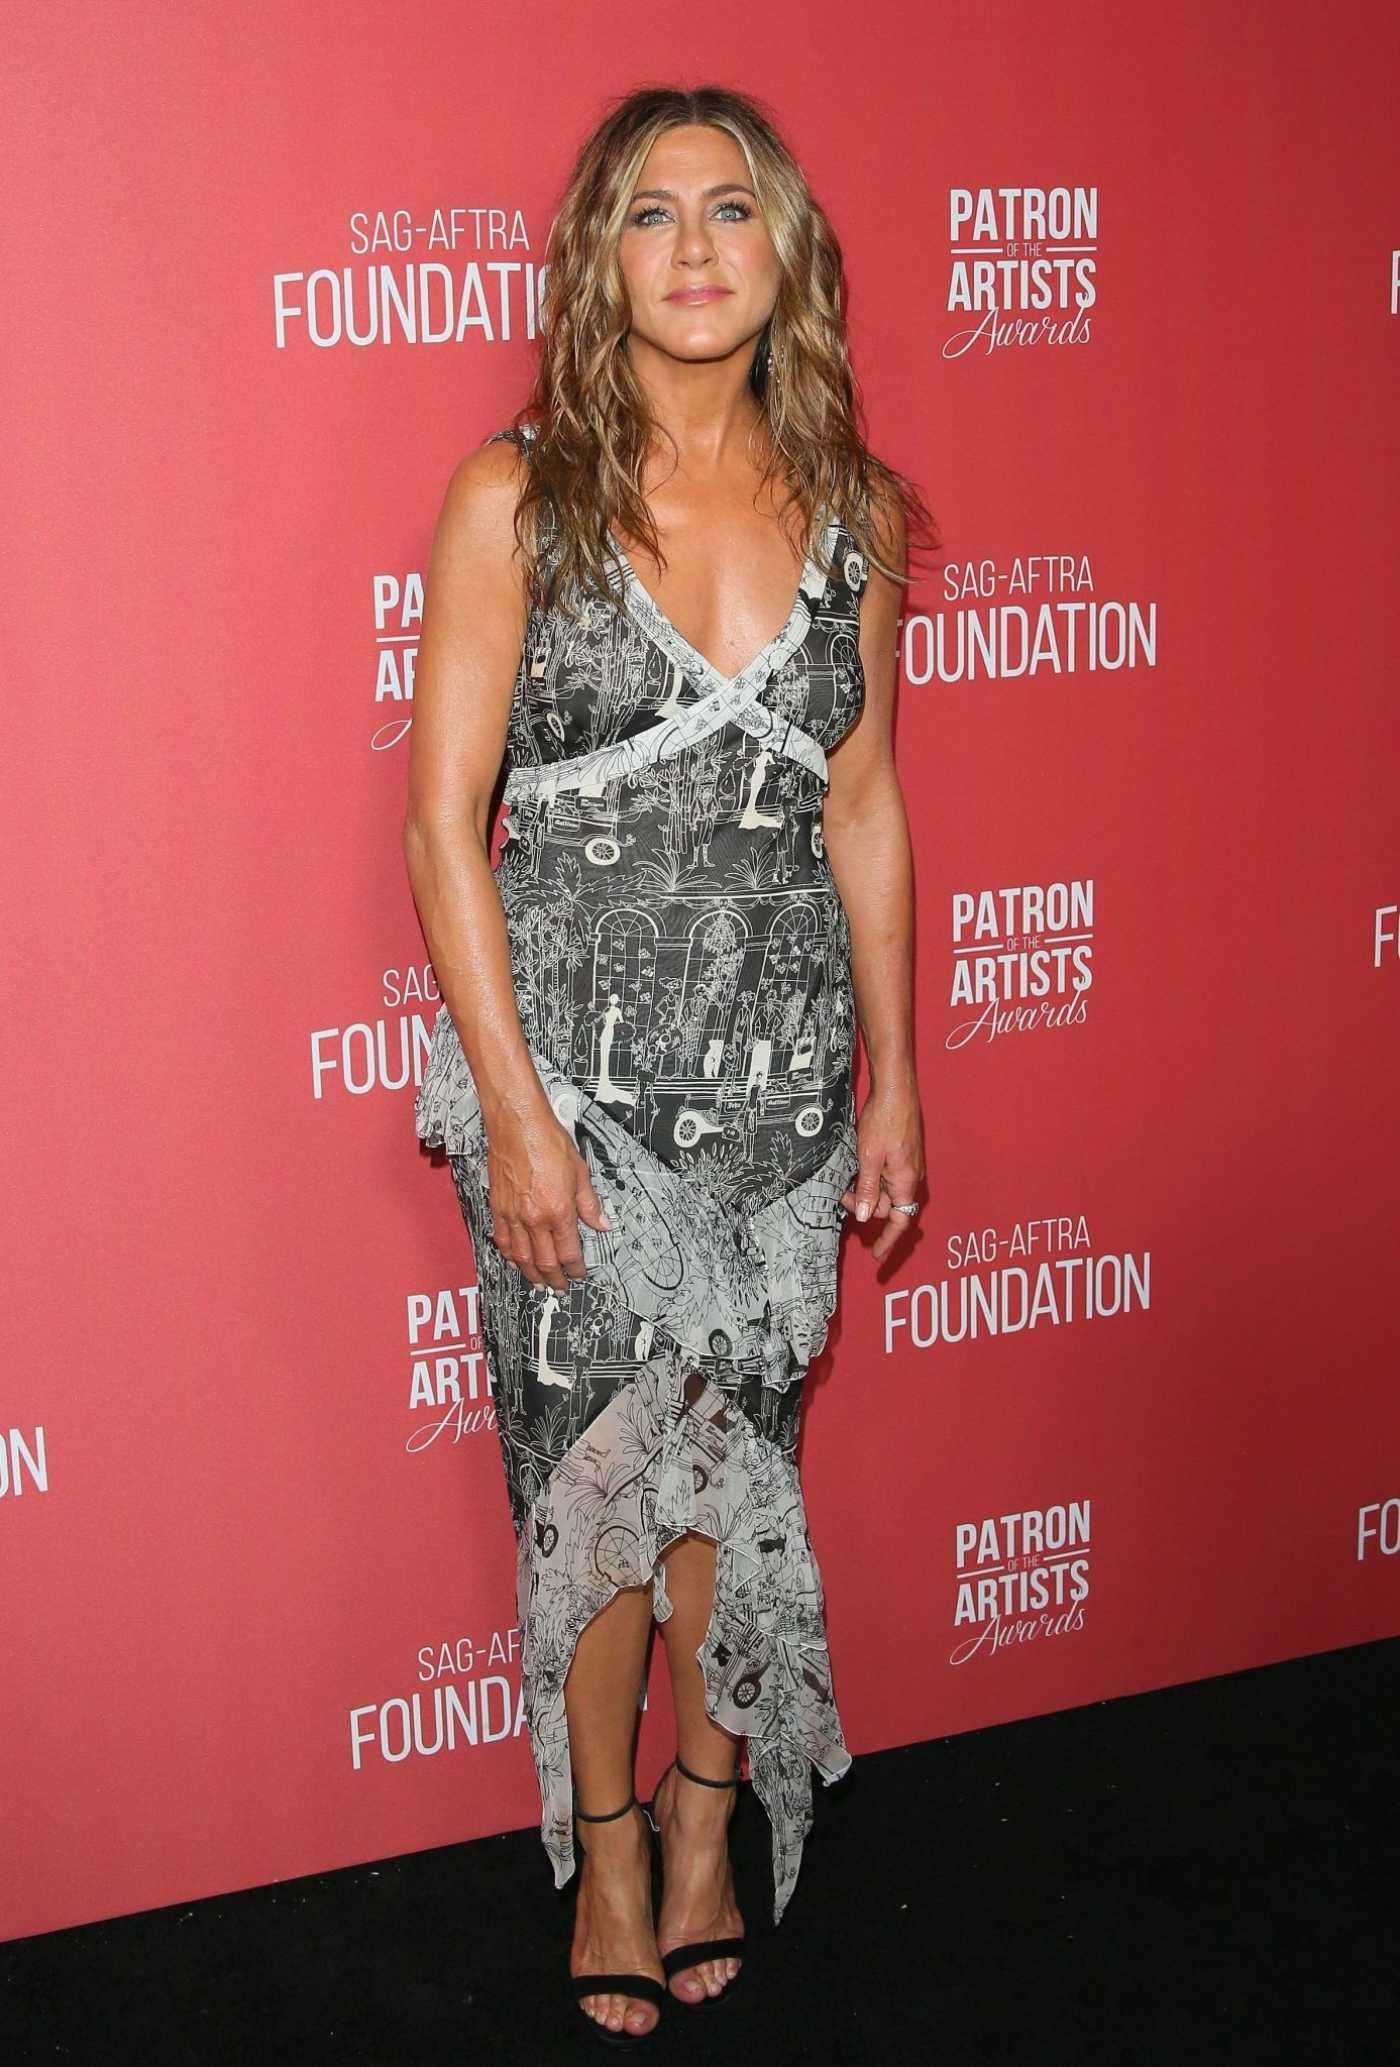 Jennifer Aniston Attends the 4th Annual Patron of the Artists Awards in Los Angeles 11/07/2019